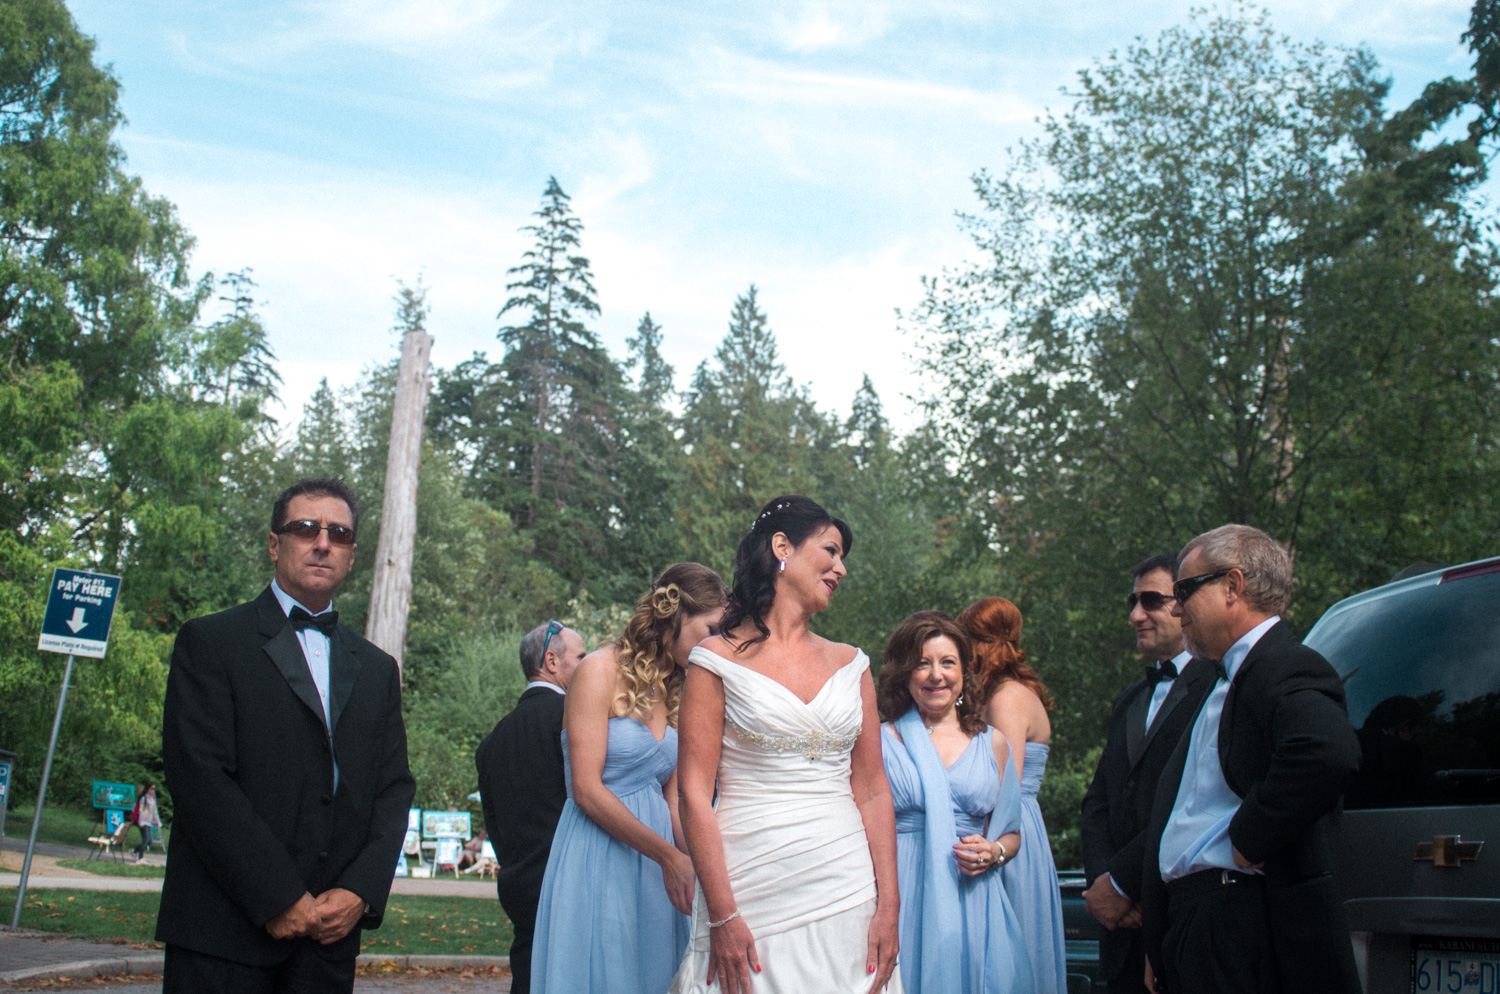 I love how the sunglasses on the groomsmen contrasts with the sky blue dresses of the bridesmaid and the bride in the center of it all.